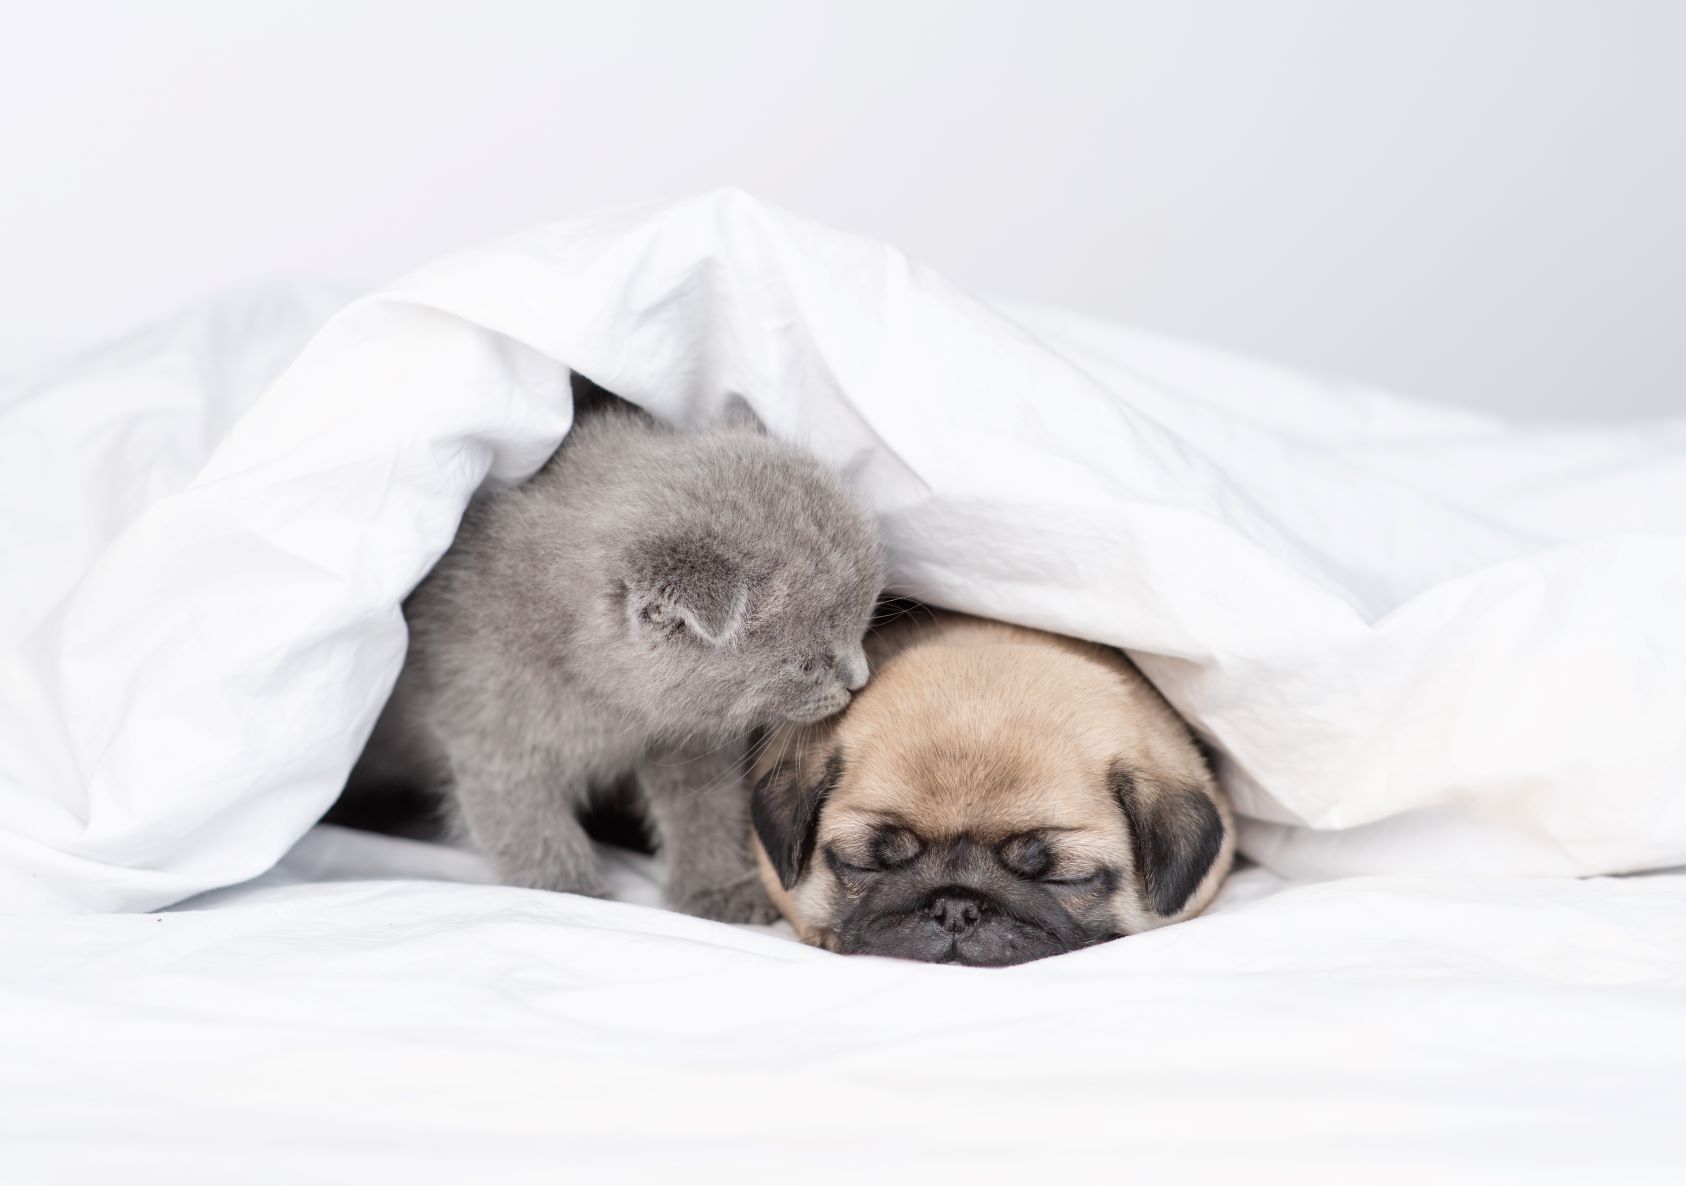 A curious kitten smelling his puppy friend under the covers on the bed